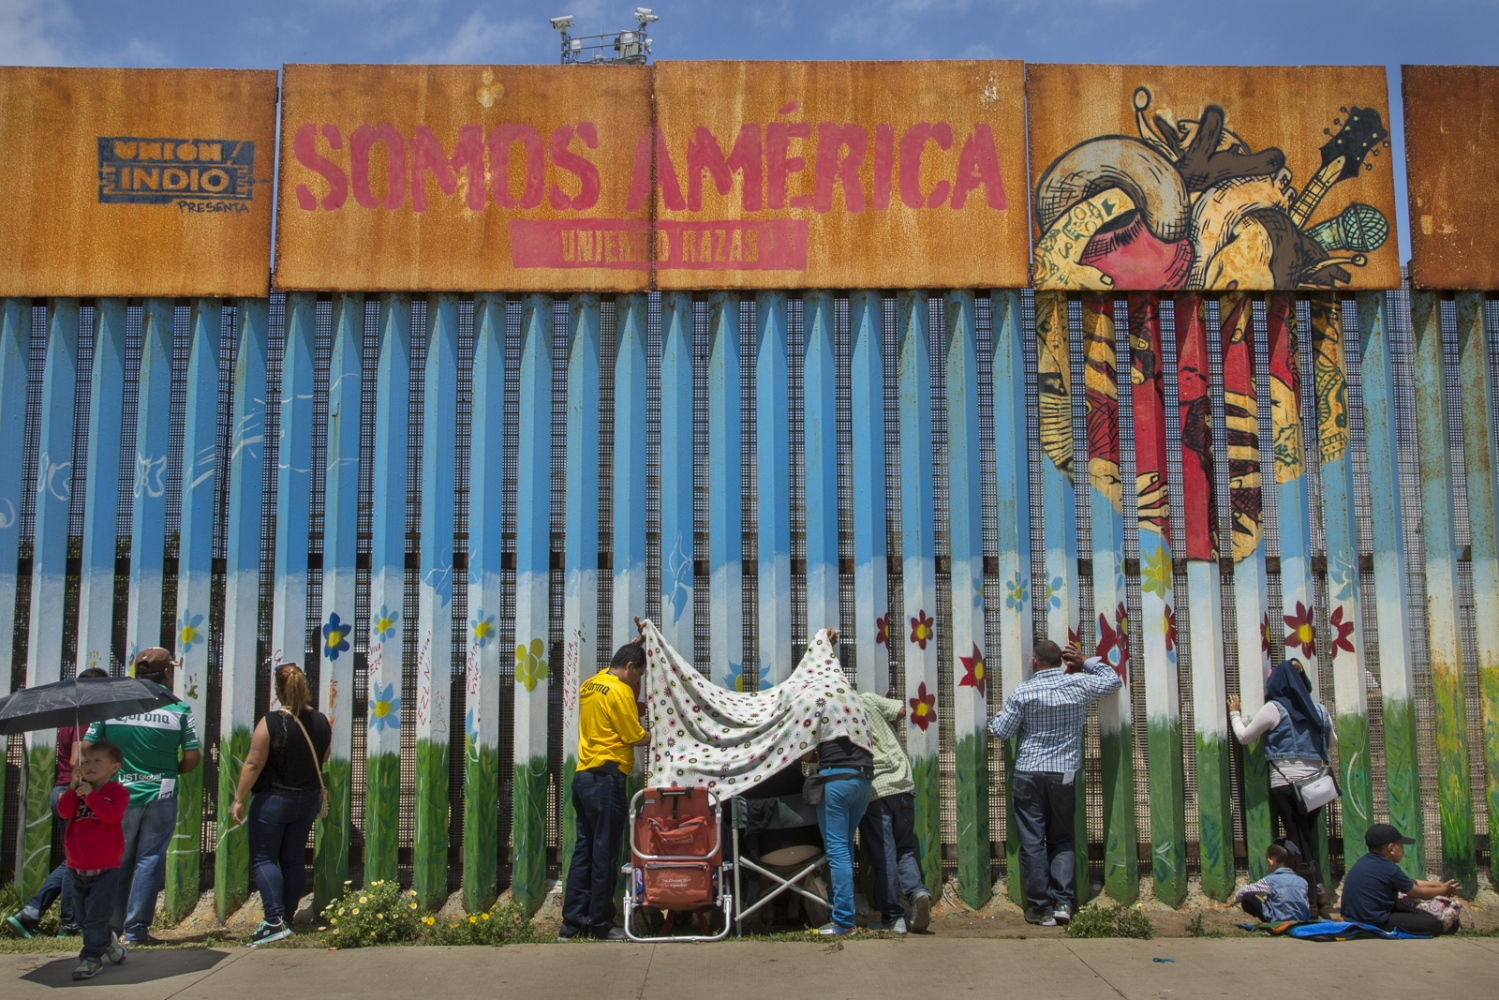 At Friendship Park, the only federally established binational meeting place along the U.S.-Mexico border, families separated by immigration laws gather at both sides of the fence to spend some time together on the weekends. On the U.S. side, the area for visitation is only open a few hours on Saturday and Sunday and the Border Patrol is always vigilant.